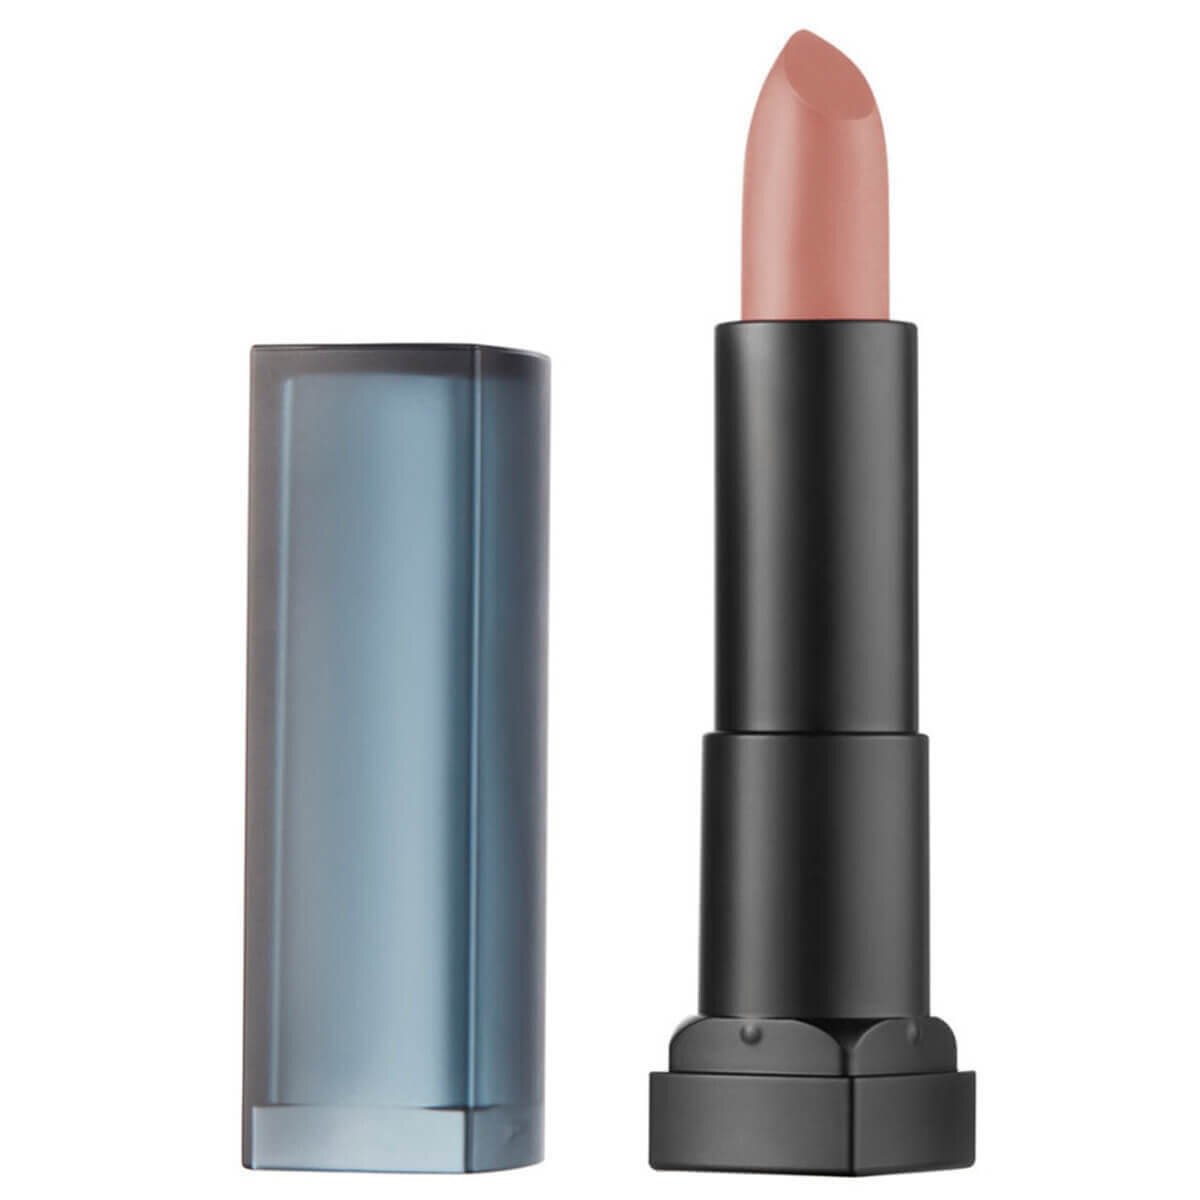 MAYBELLINE COLOR SENS.POWD.MAT.RUJ 15 SMOKY TAUPE